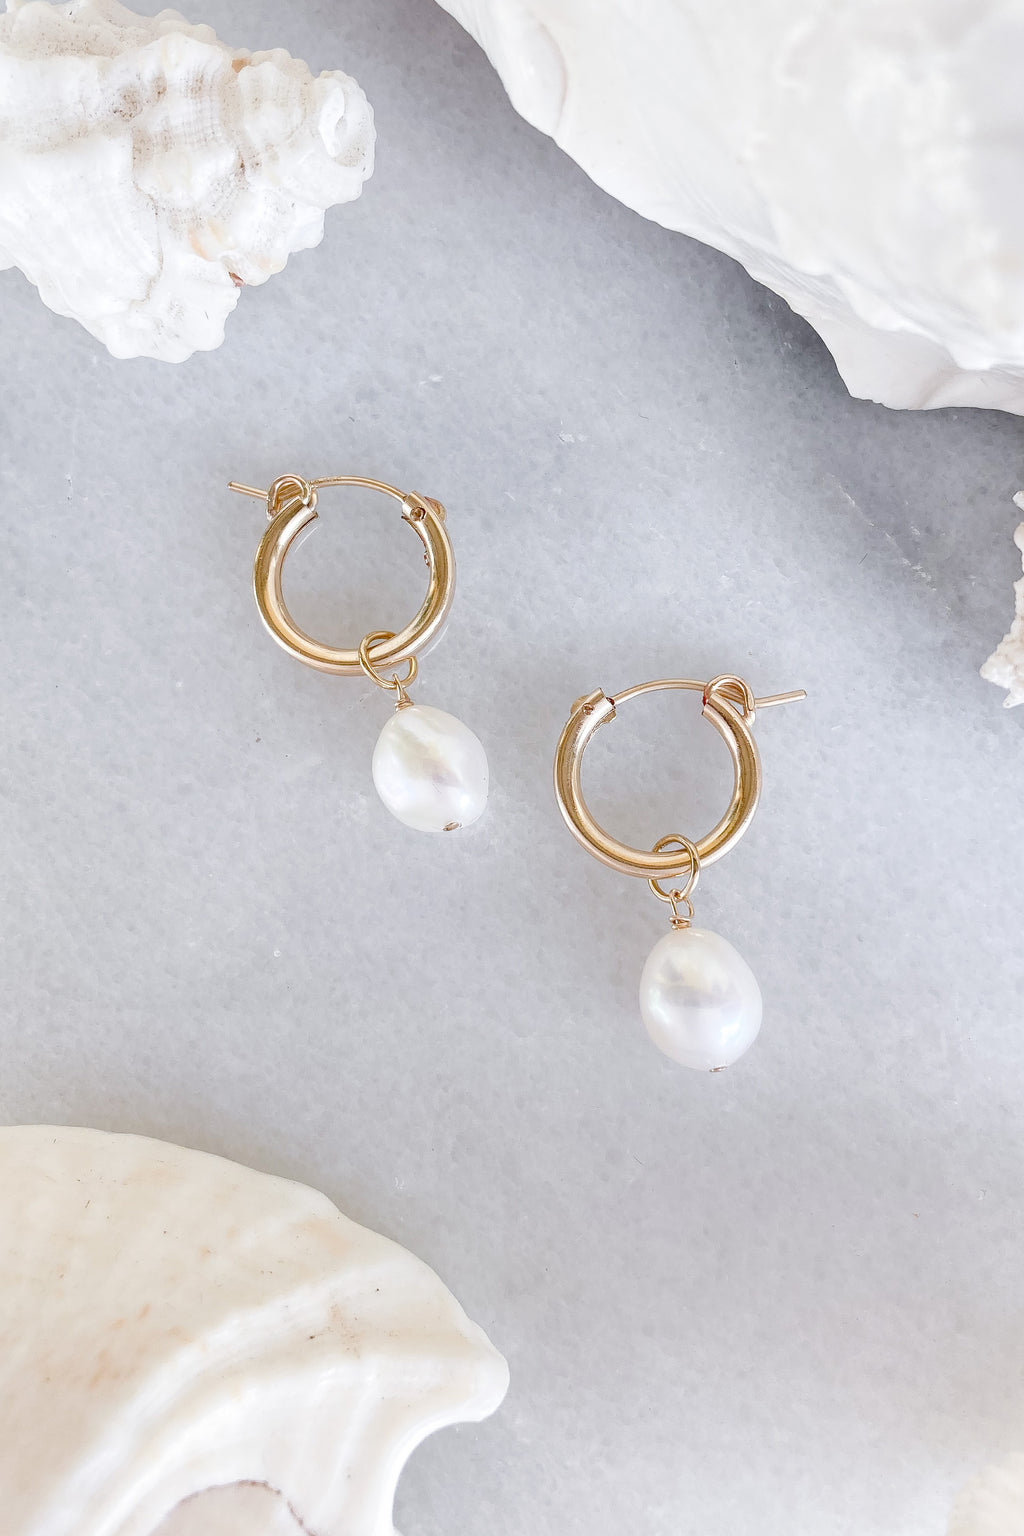 pearl hoops gold fill earrings